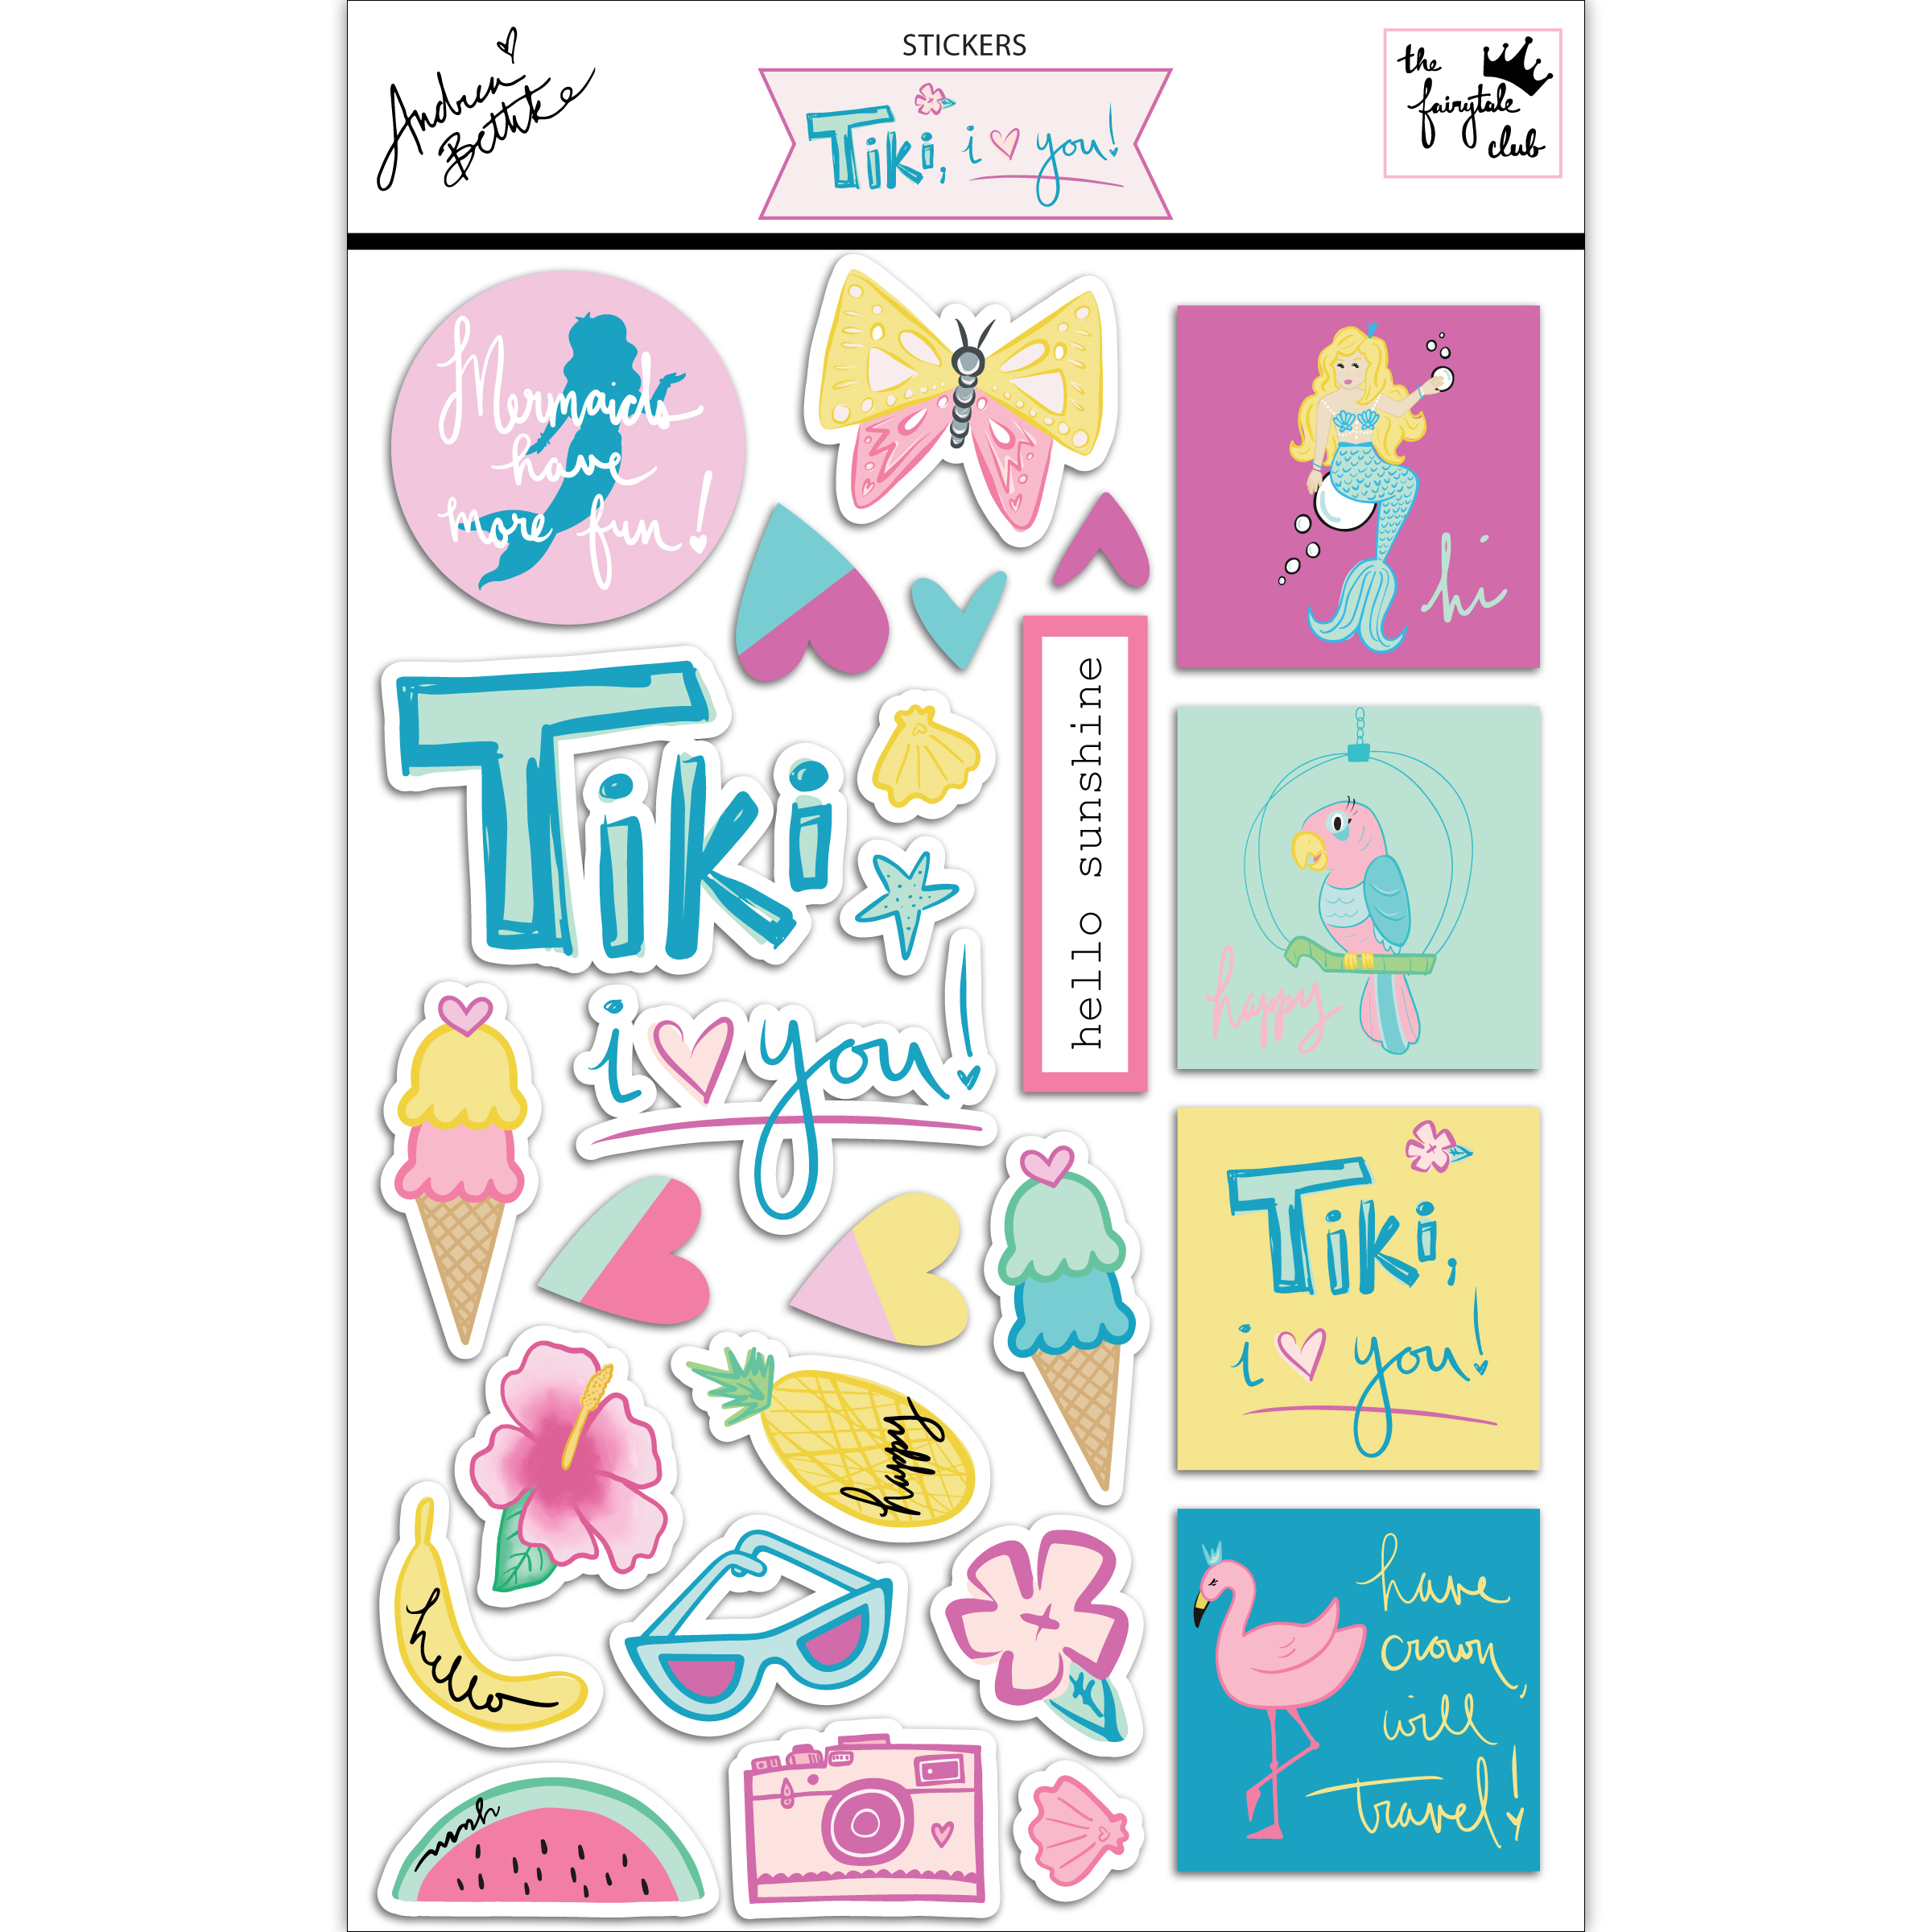 Tiki, I Love You - sticker sheet with packaging square.jpg